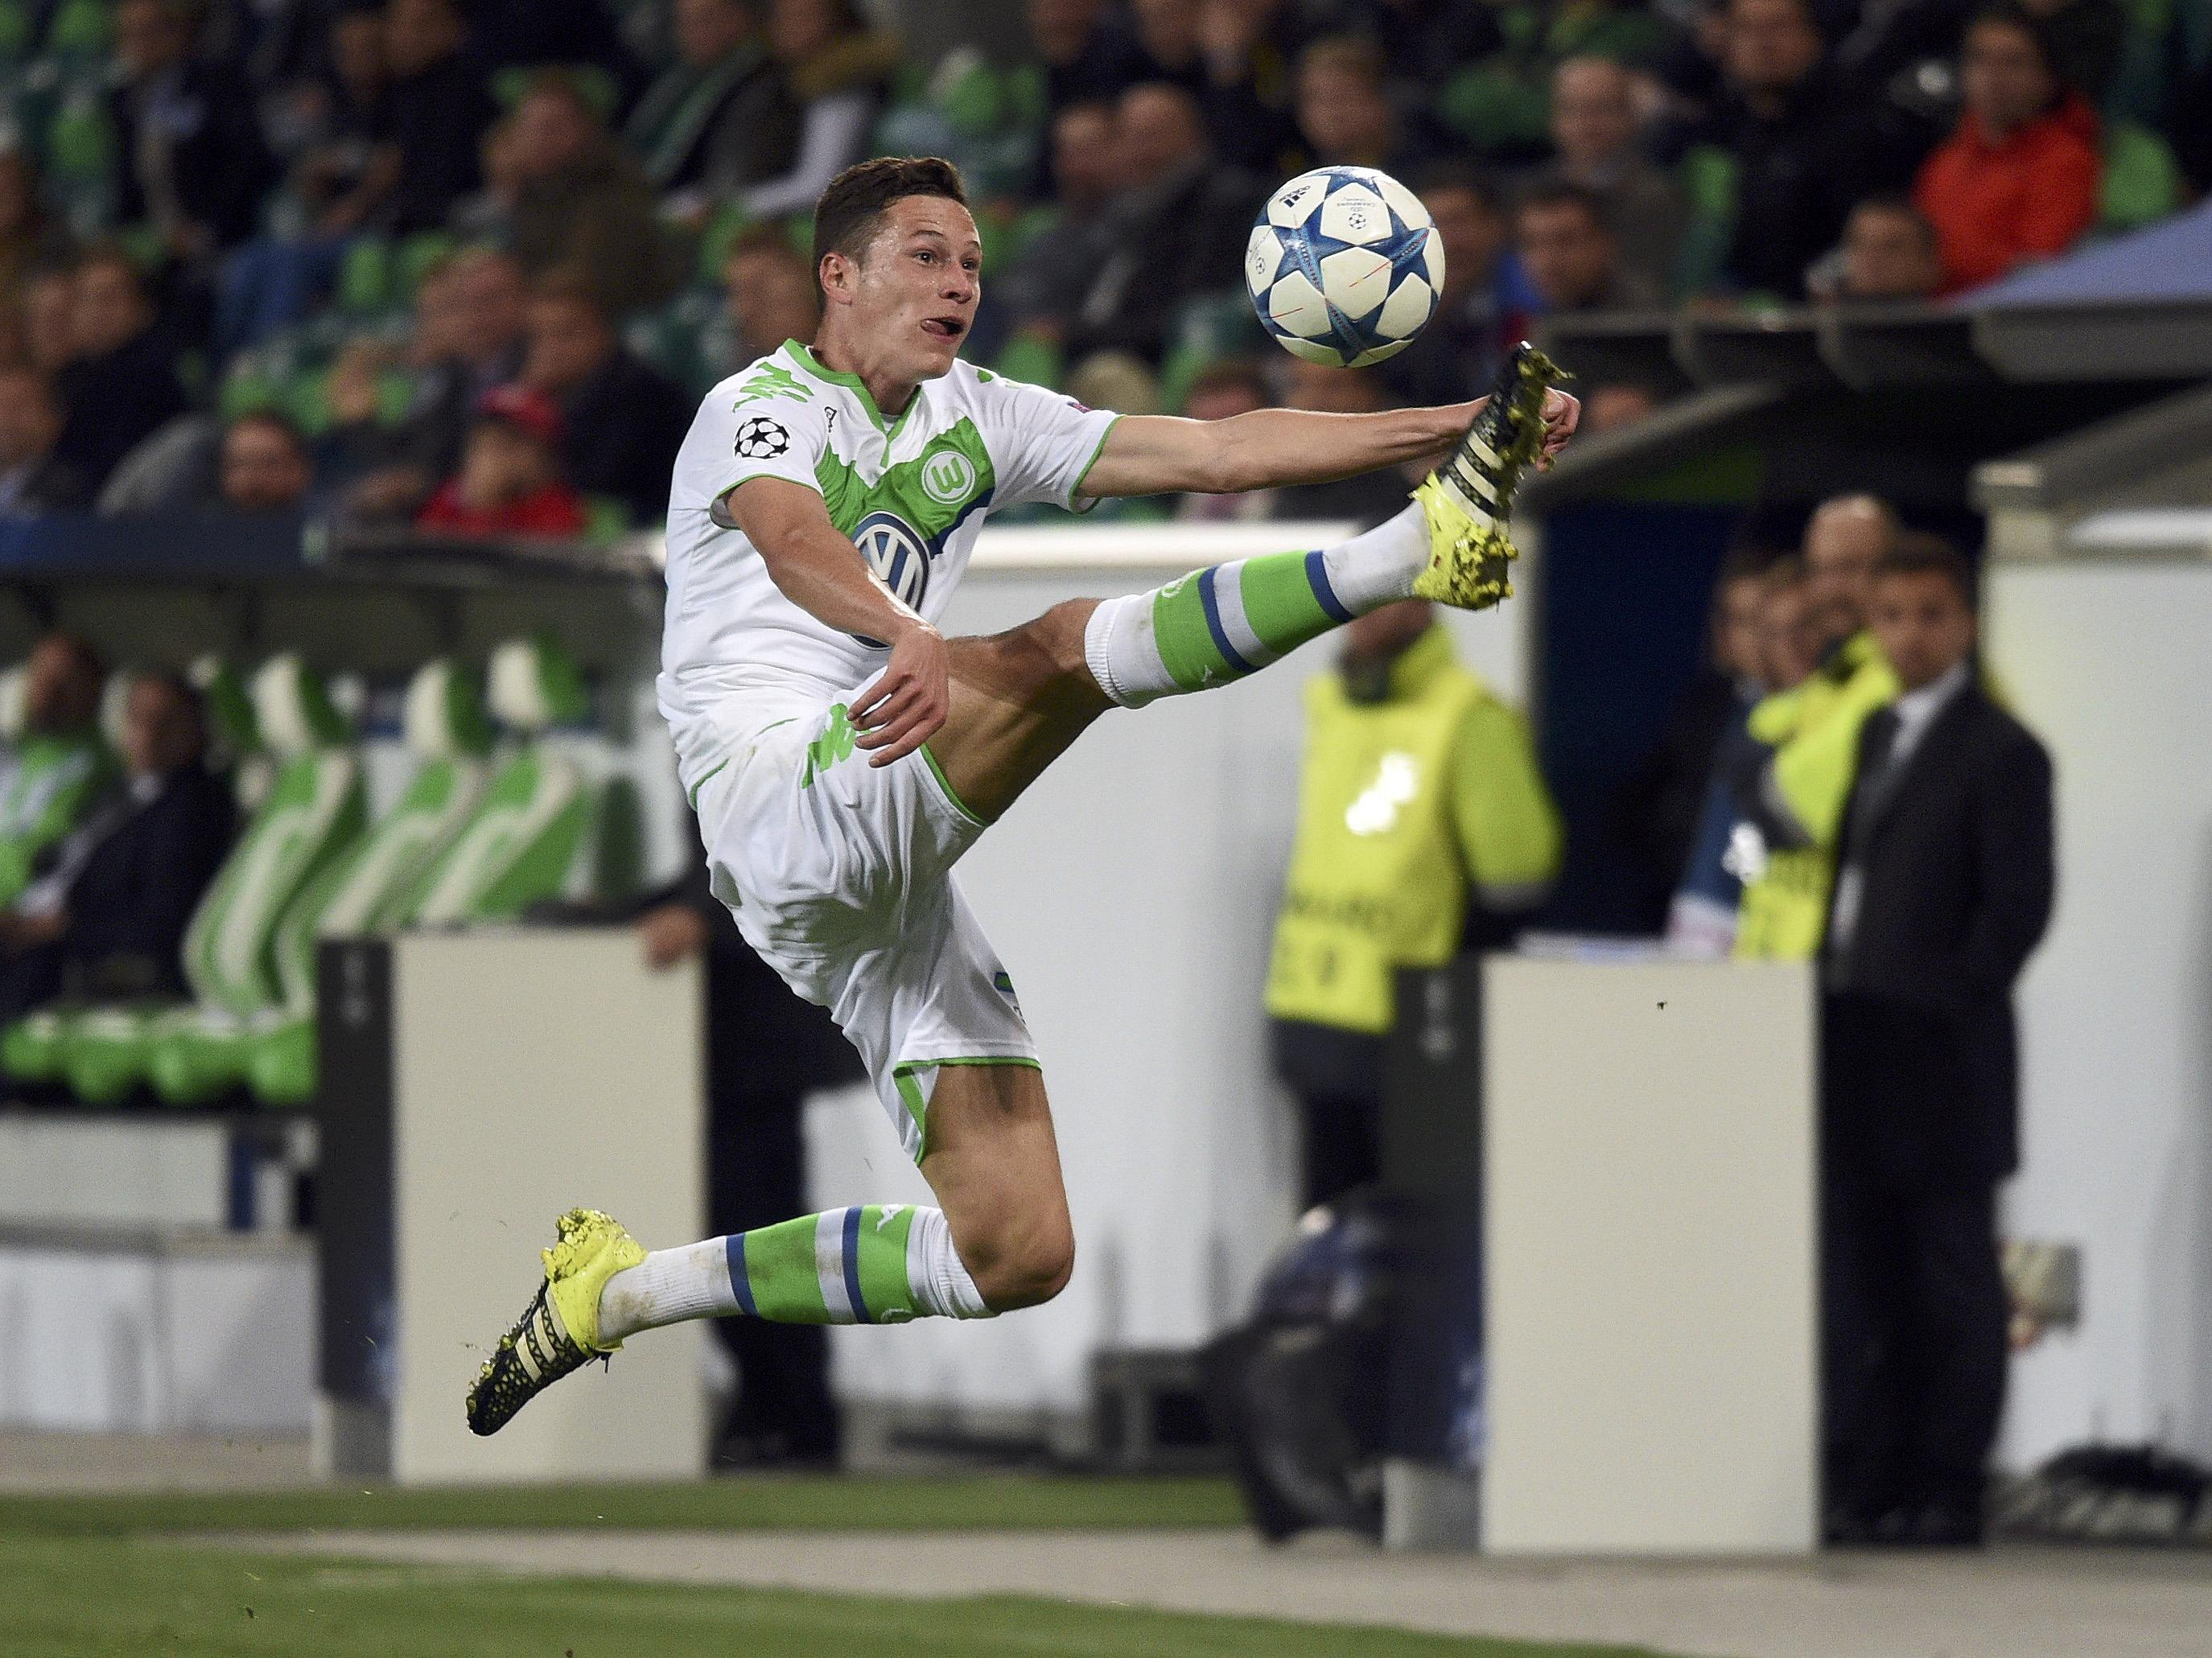 Wolfsburg's Draxler plays the ball against CSKA Moscow during their Champions League group B soccer match in Wolfsburg